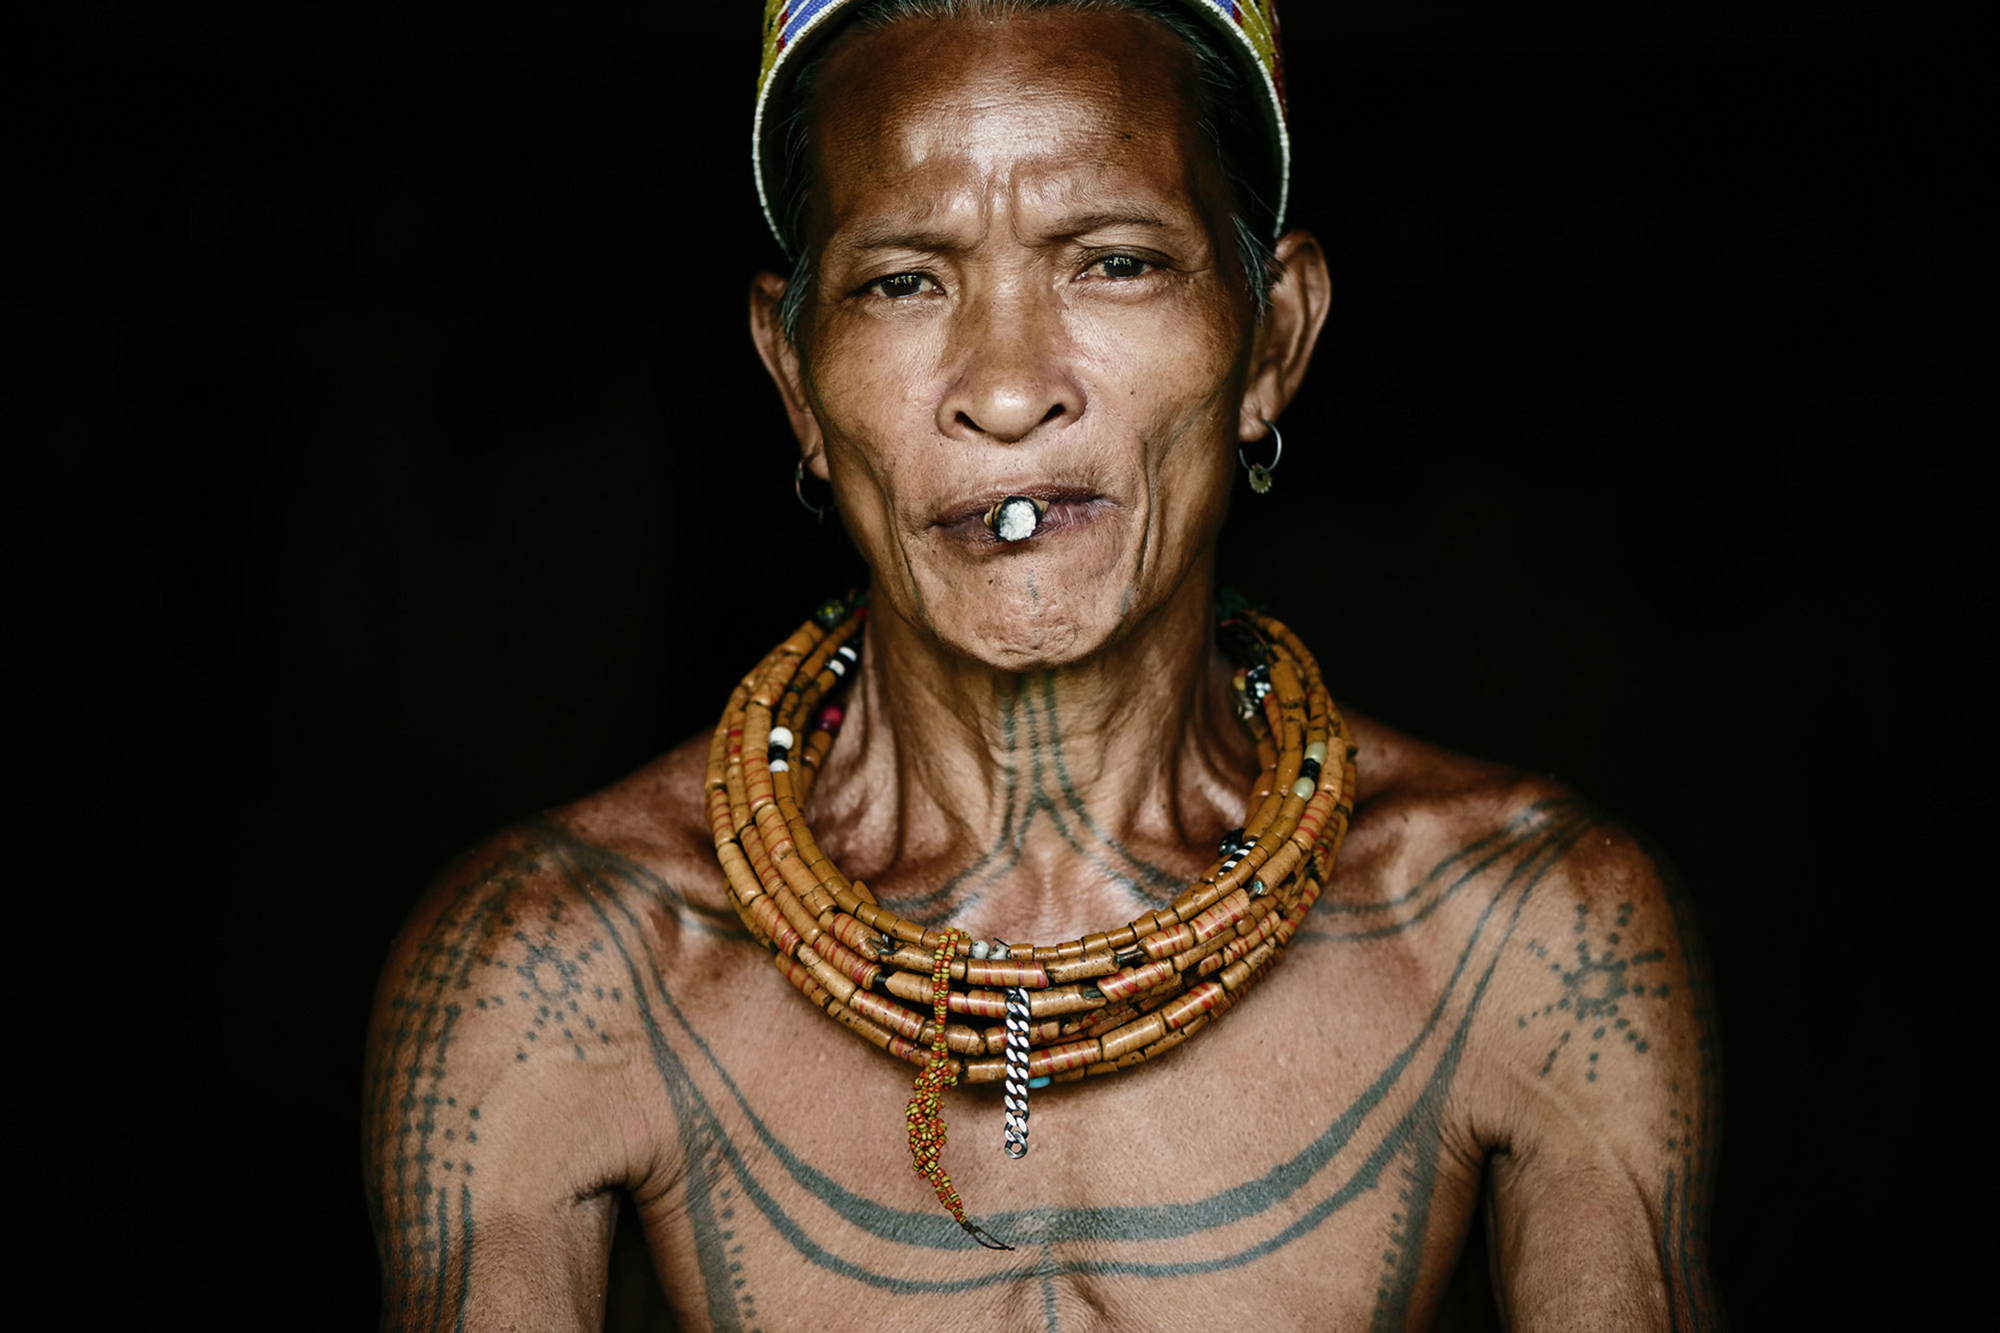 Powerful Portraits of People from Unique Cultures by Adam Koziol